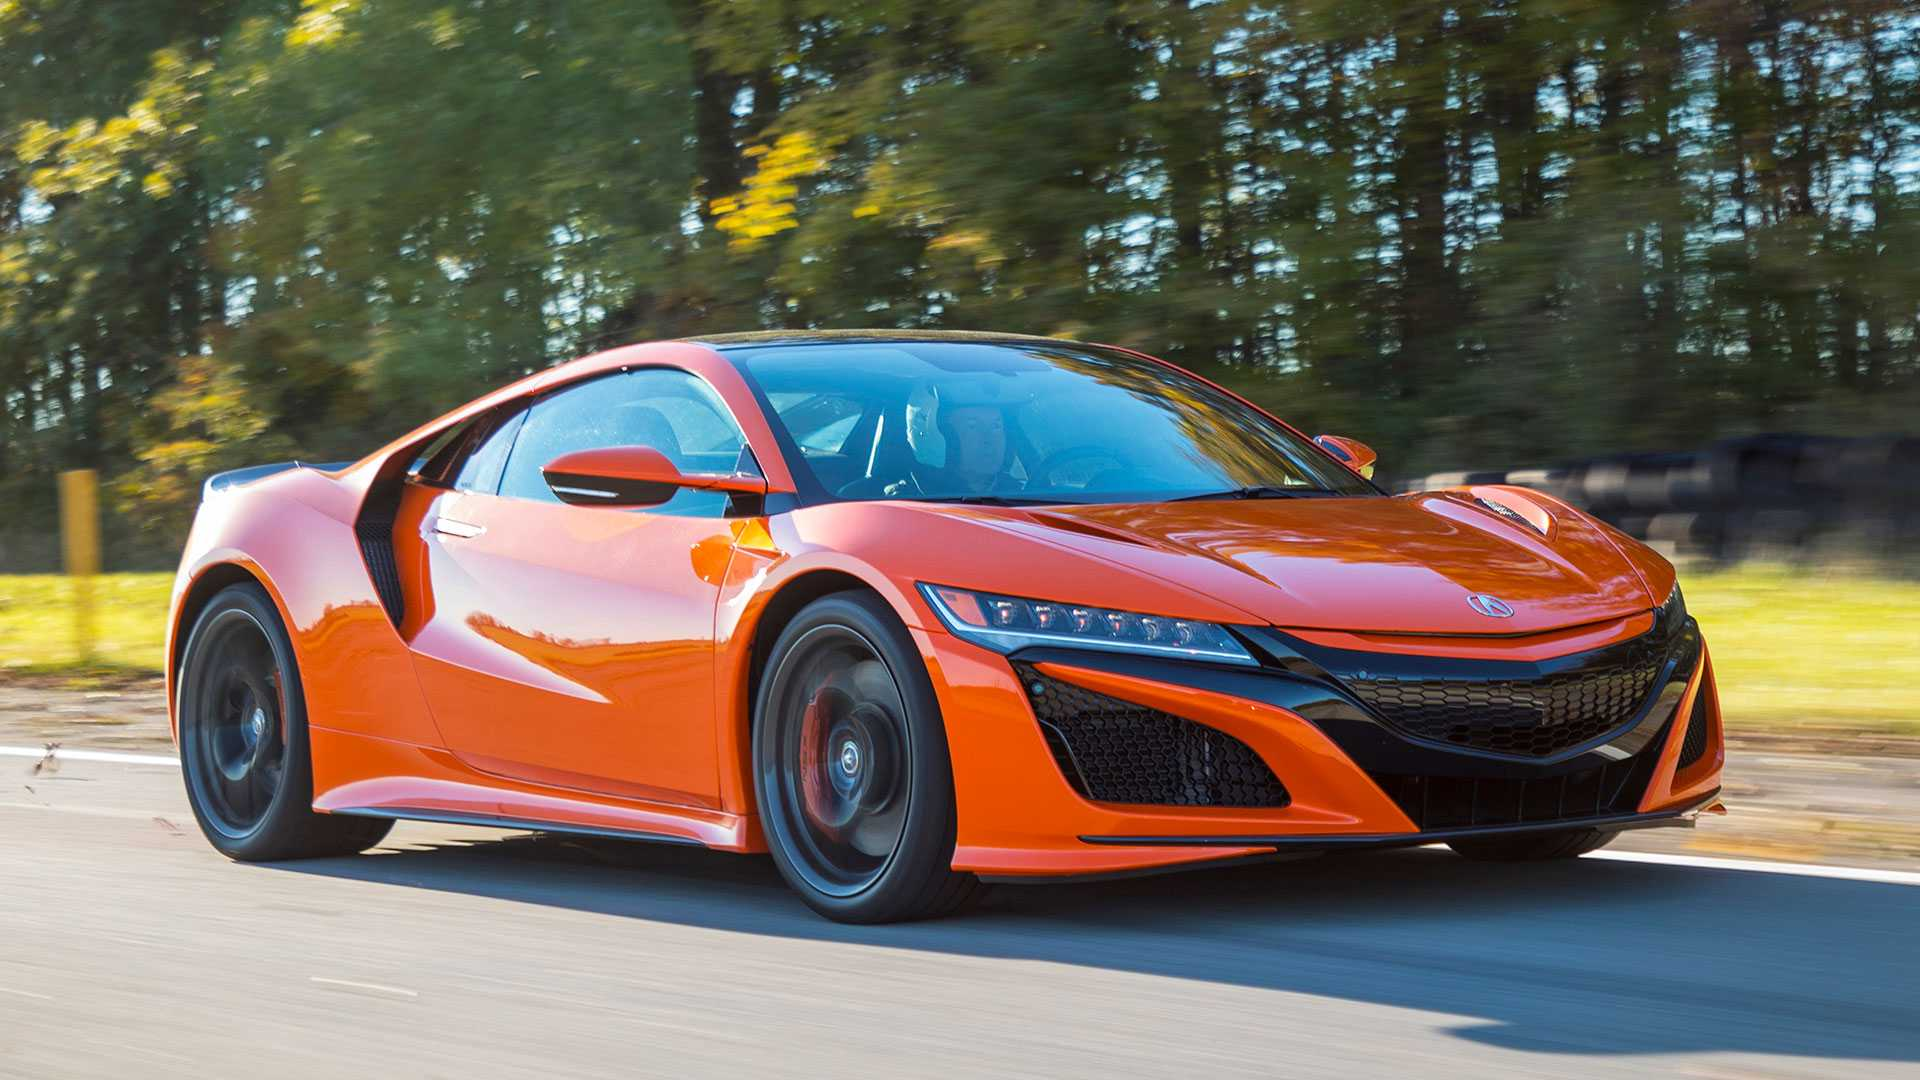 50 Gallery of 2019 Acura Nsx Horsepower Configurations for 2019 Acura Nsx Horsepower